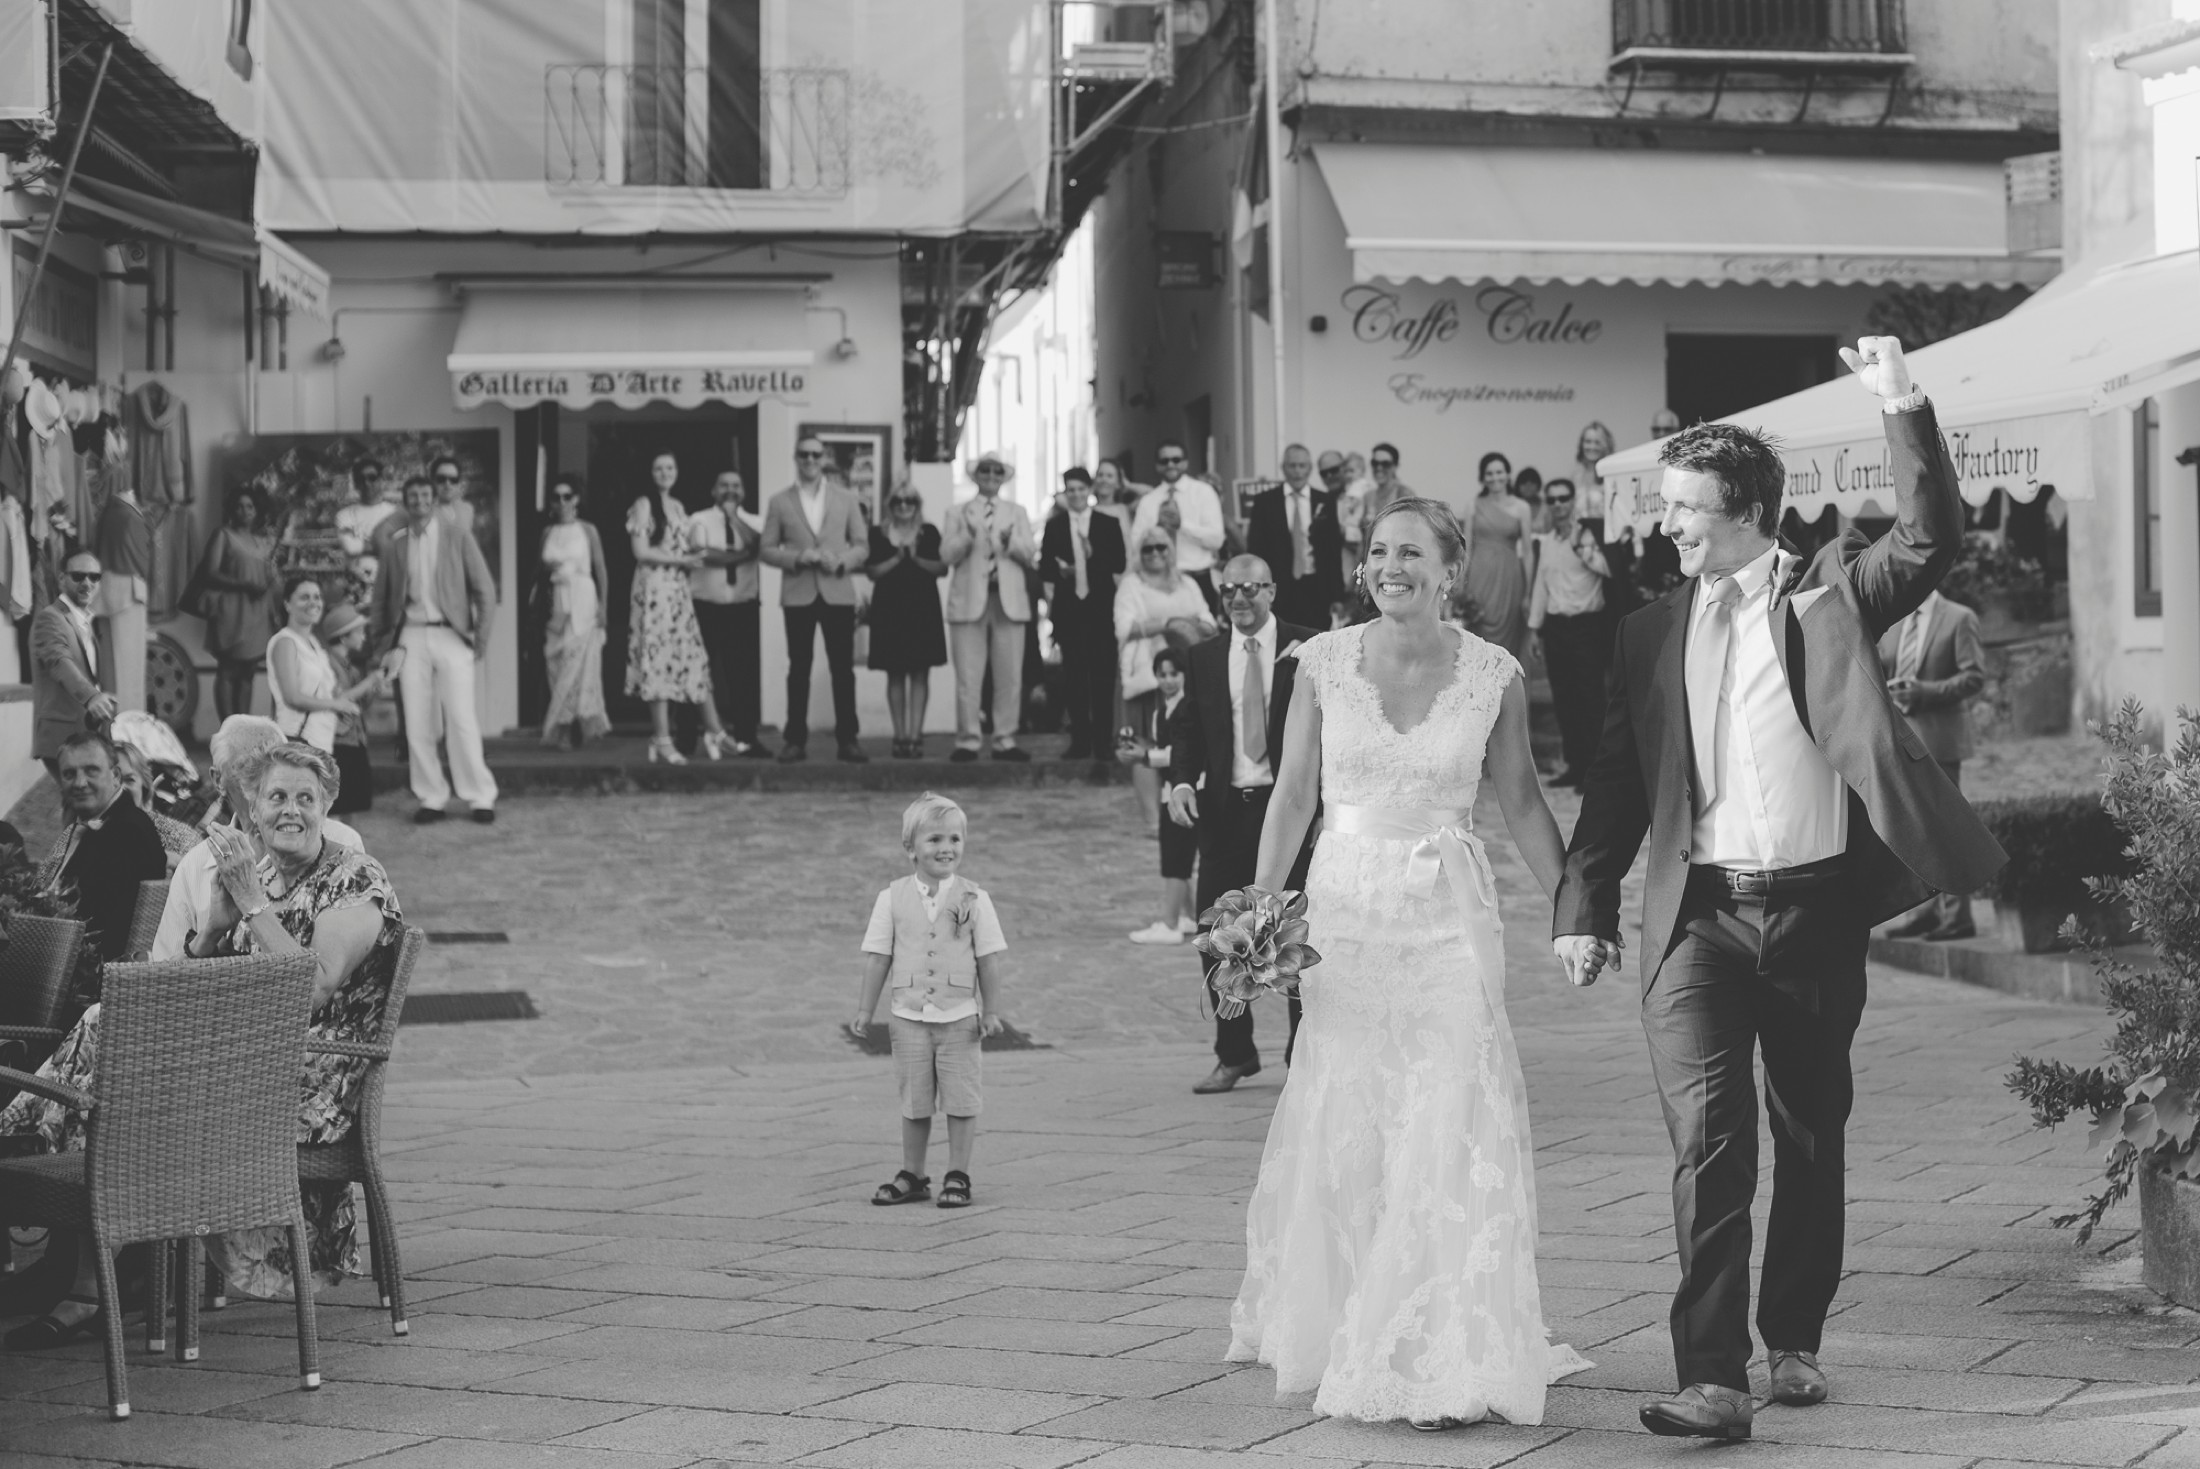 adriana alfano the bride and the groom walk through the ravello's main square after the wedding ceremony